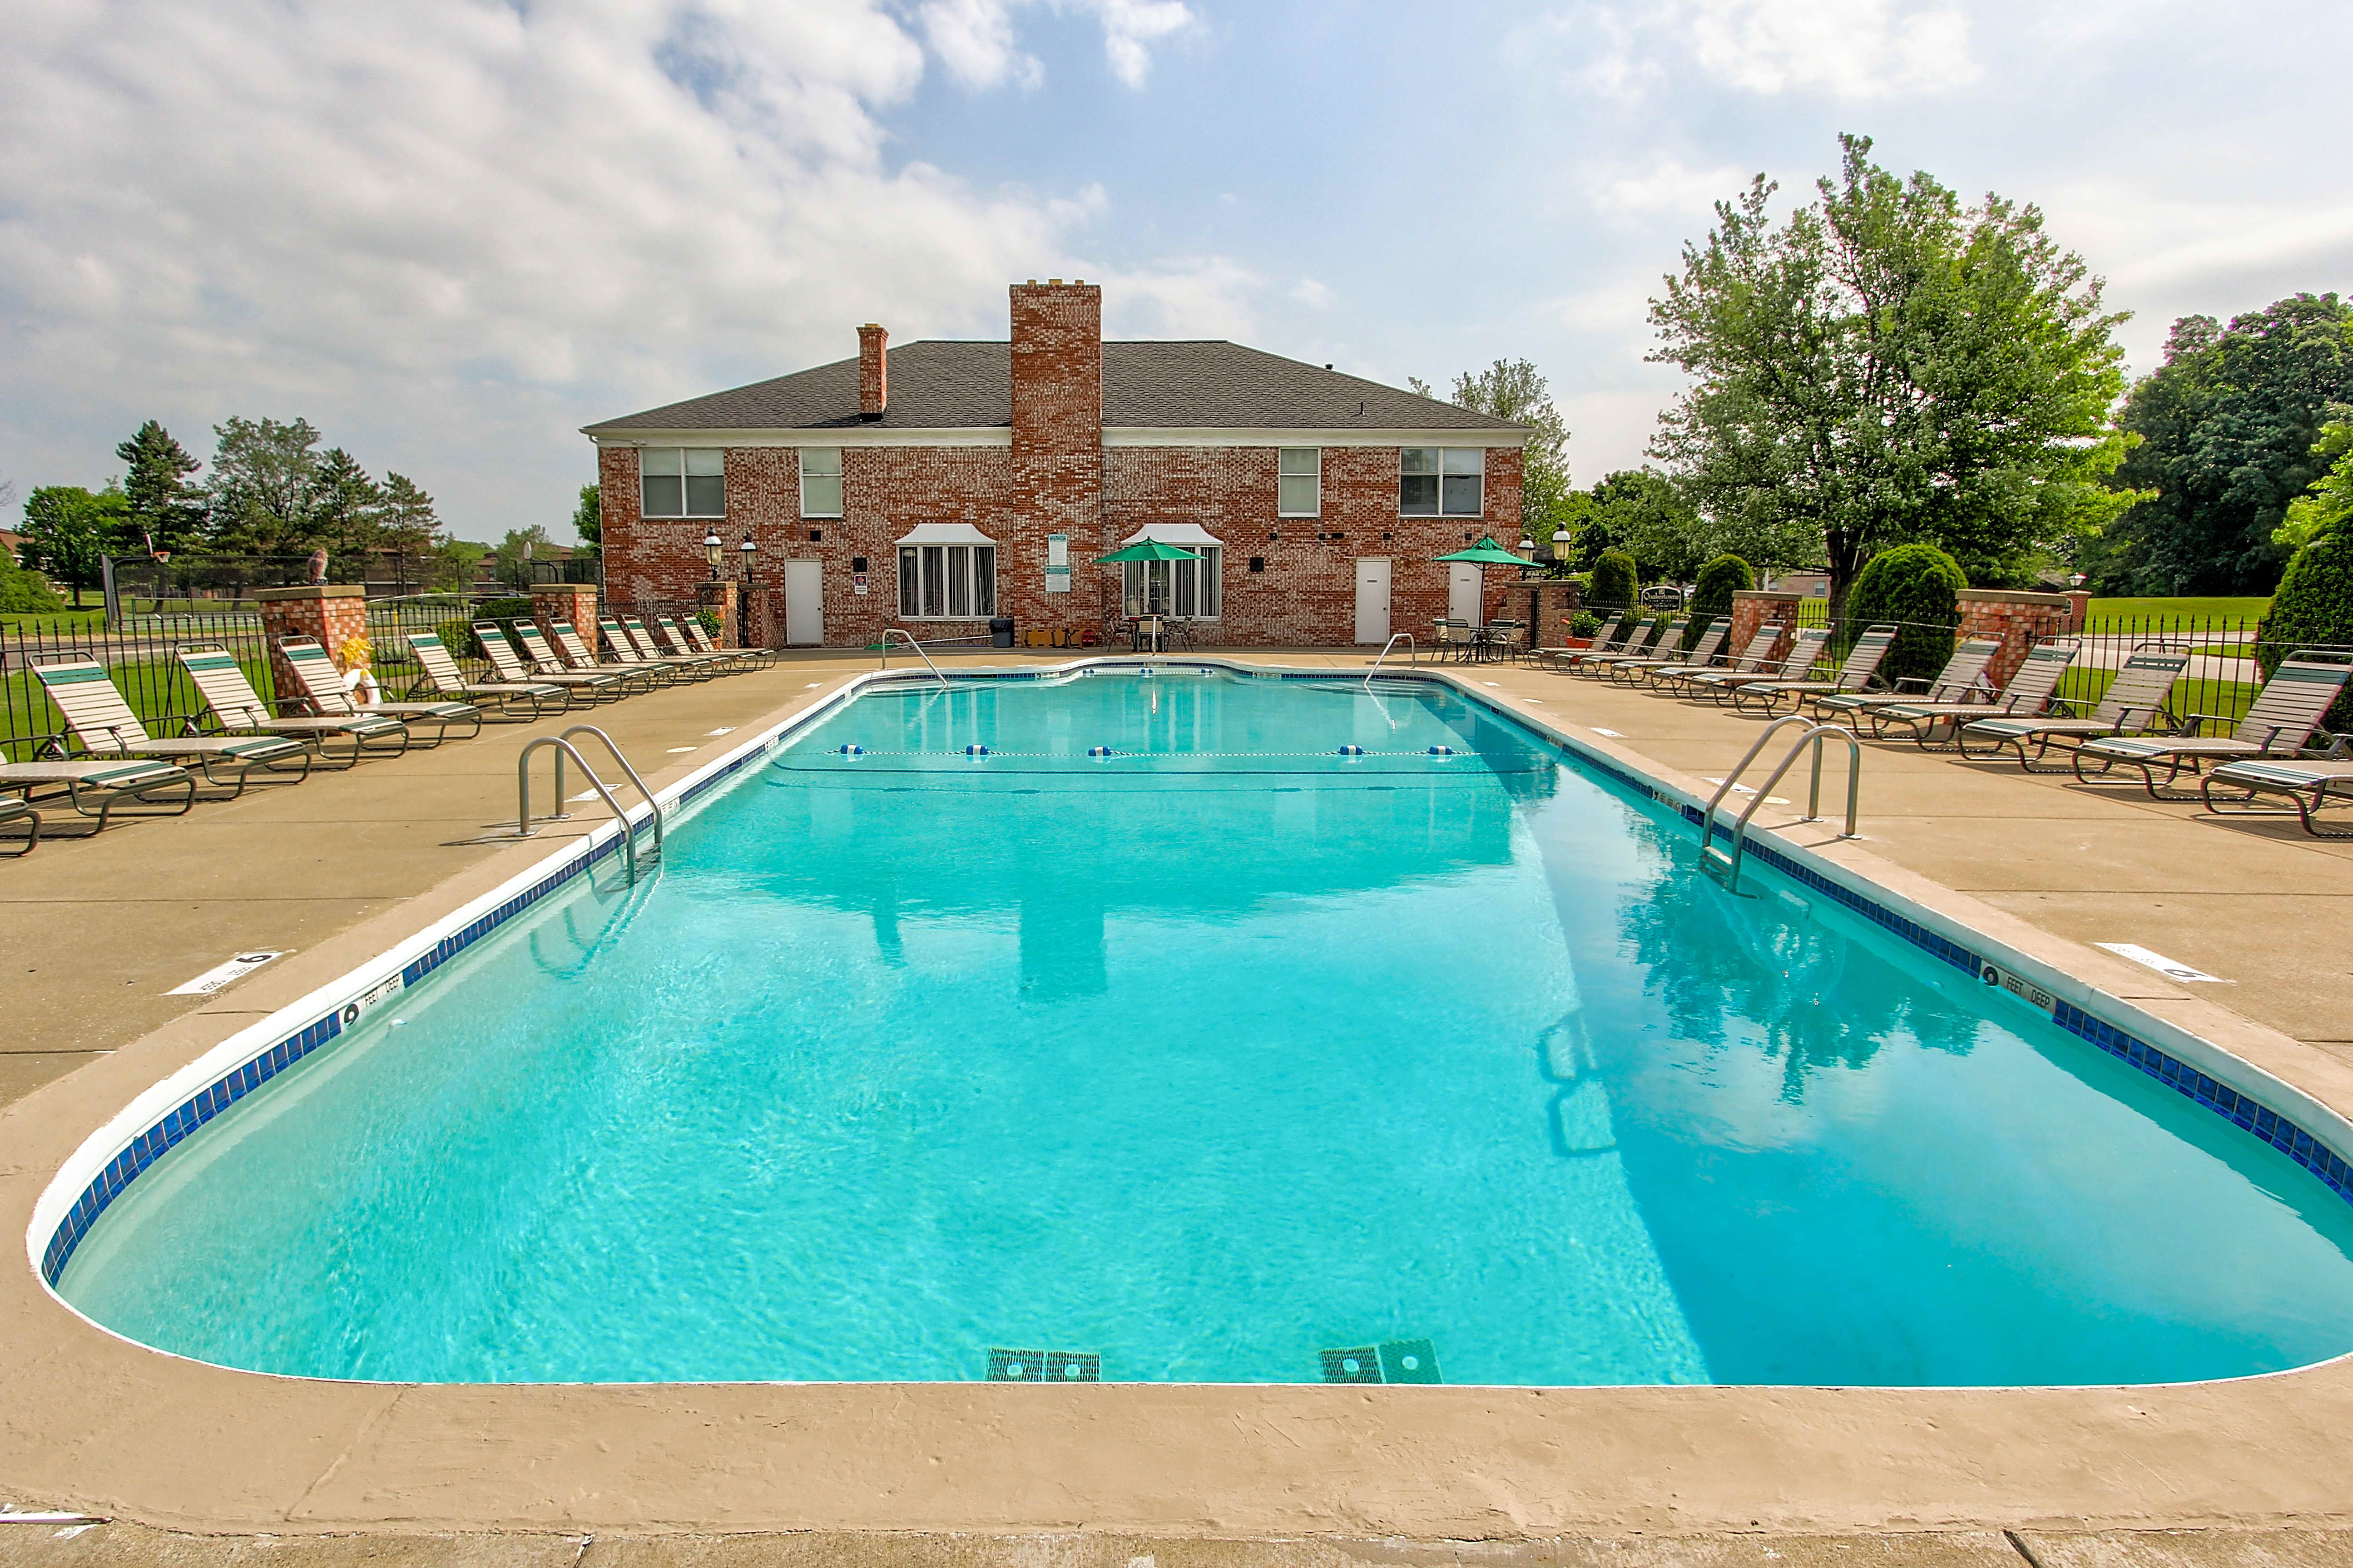 Apartments Near Hilbert Quakertowne Apartments for Hilbert College Students in Hamburg, NY